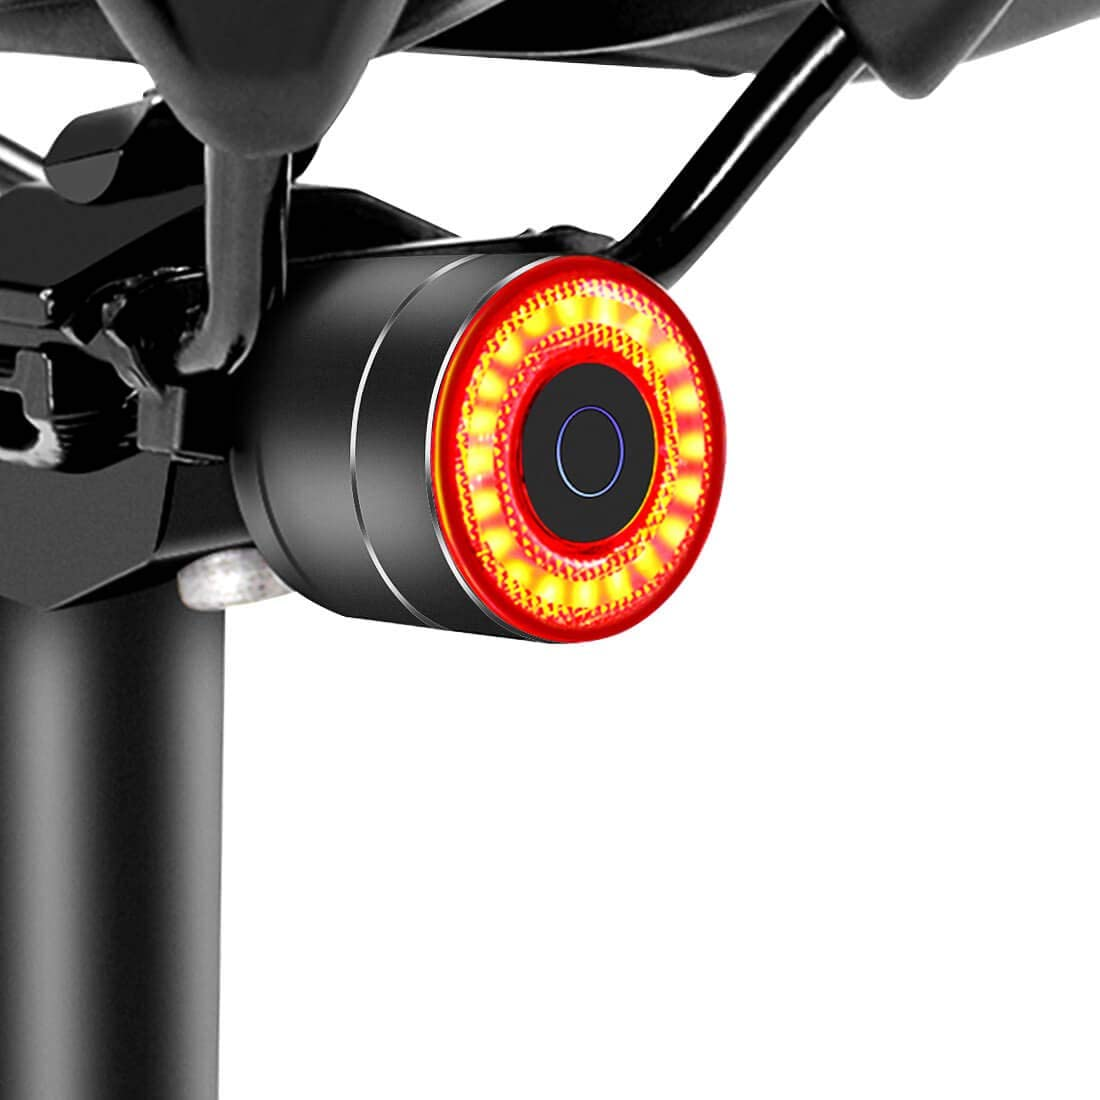 Details about  /Bicycle Rear Tail Light Lamp 120LM COB LED USB Rechargeable Taillight US